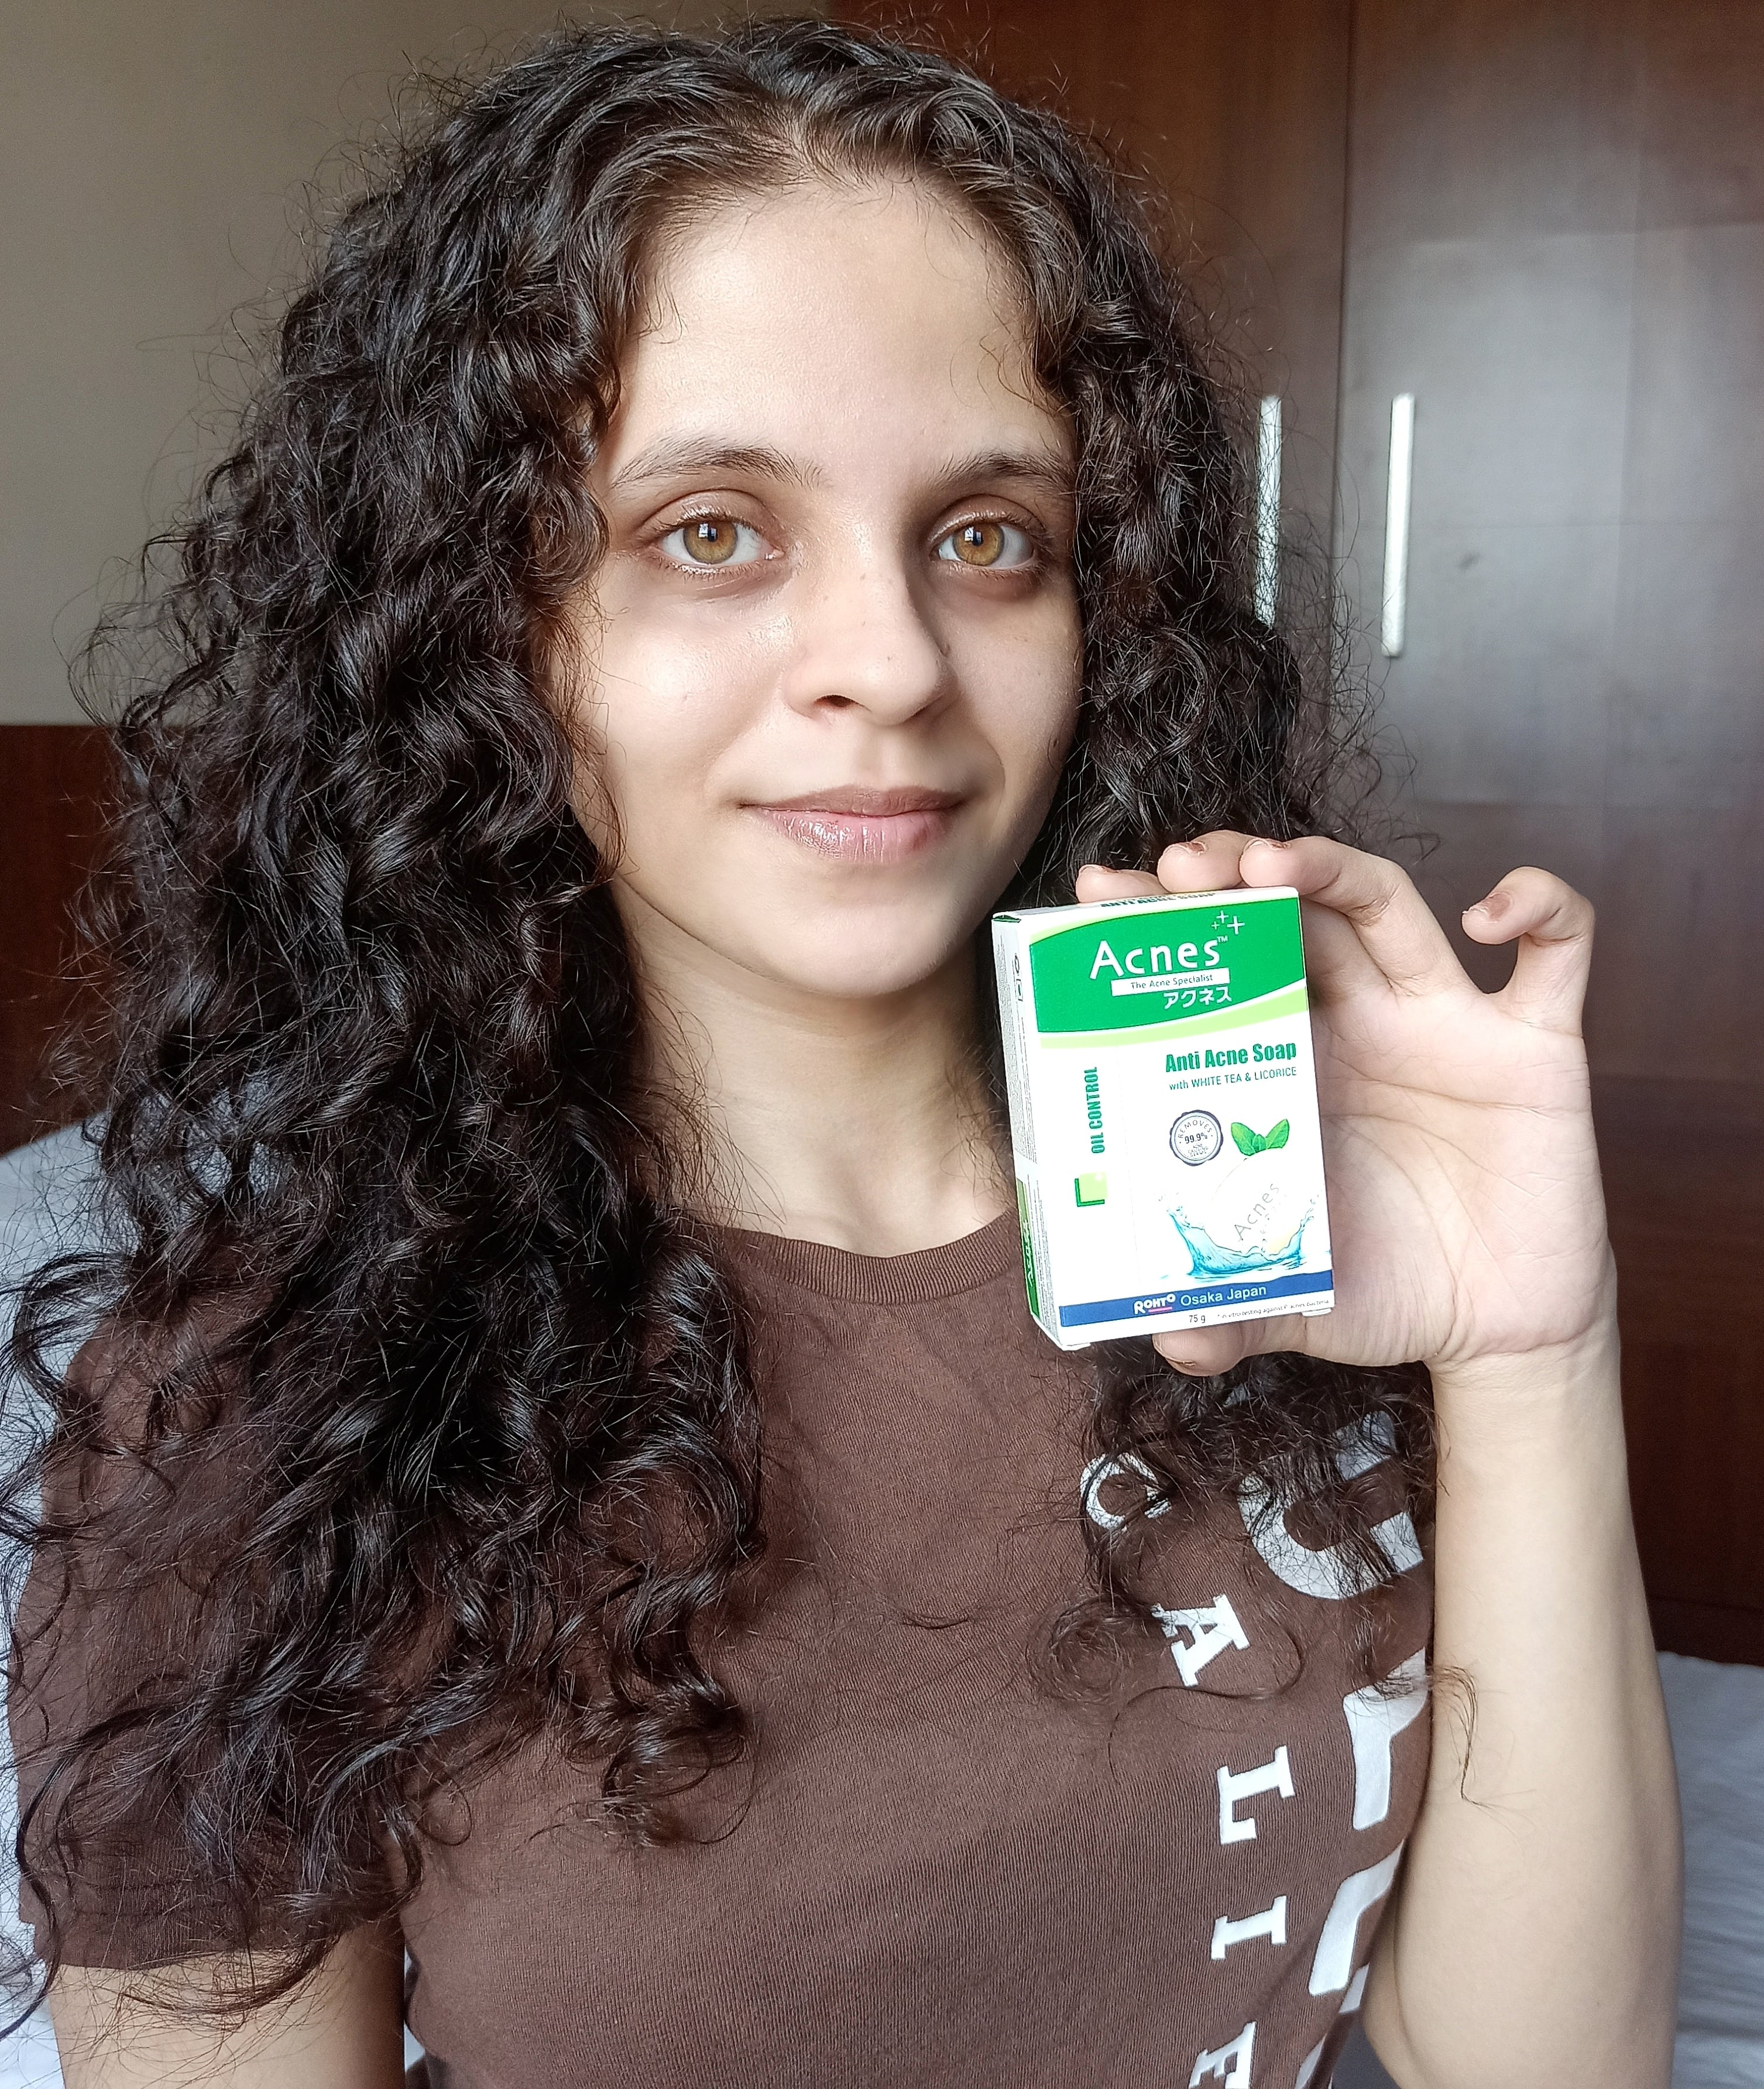 Acnes Oil Control Soap-Acnes Oil Control Soap-By sanikavasudeo